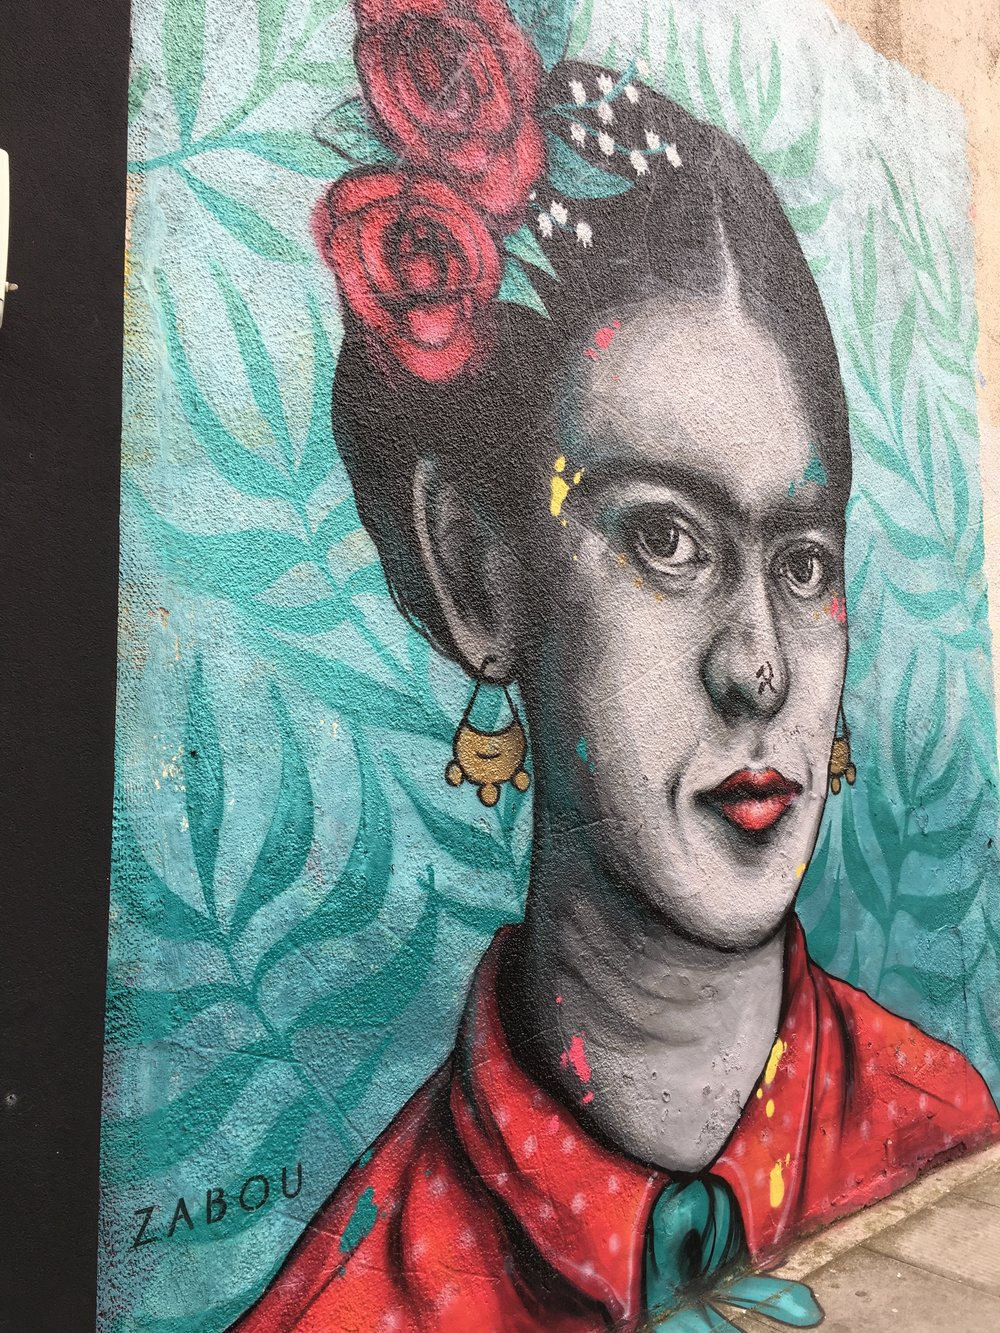 Actually, I think it's meant to be a blend of Frida and Diego!